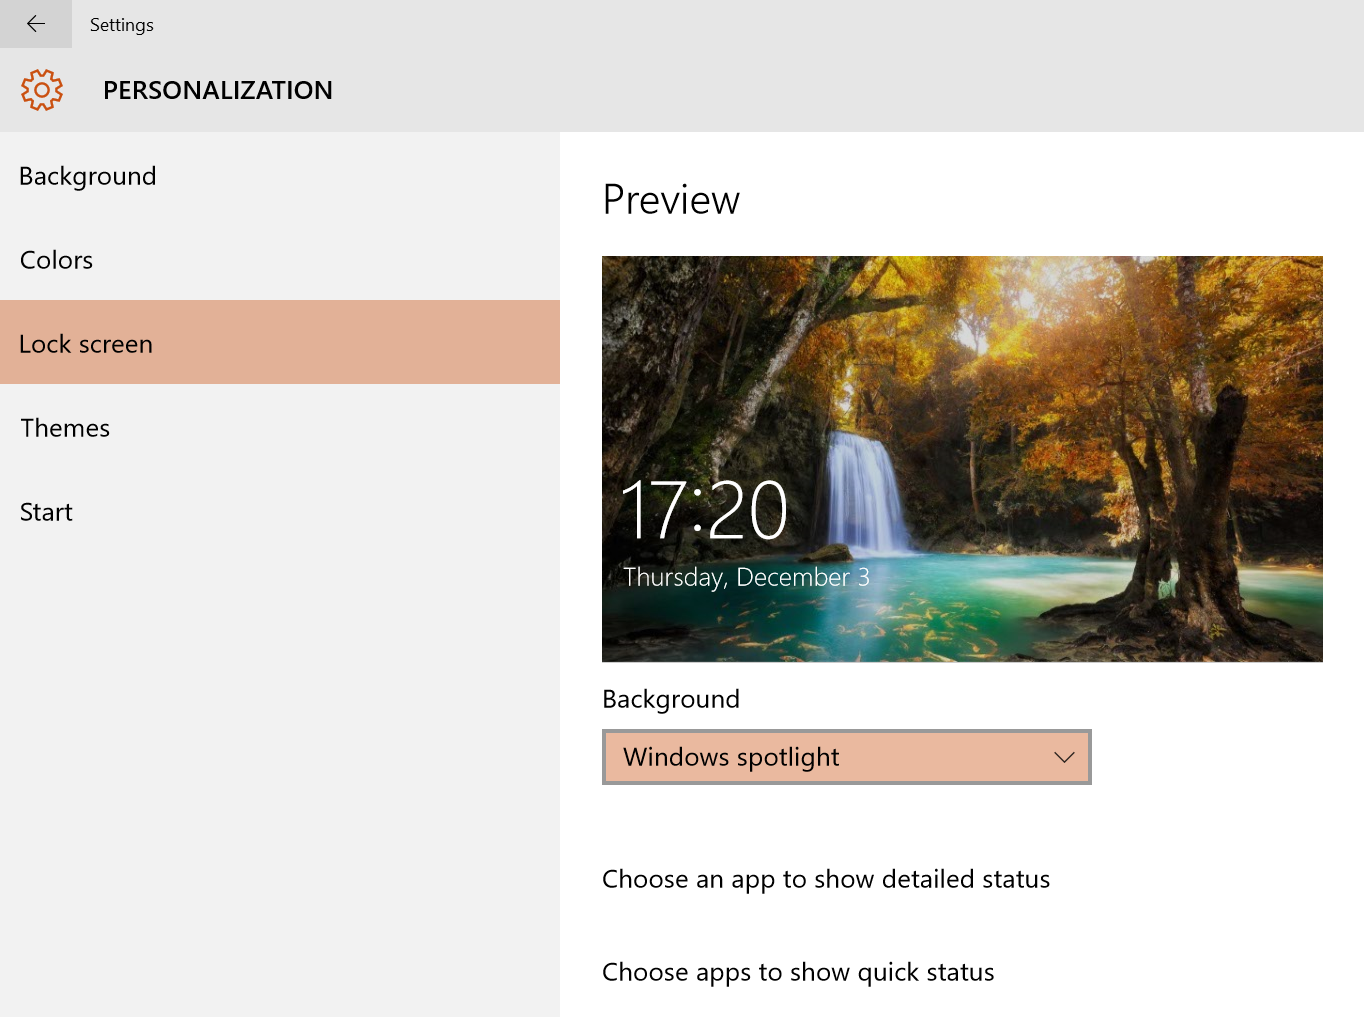 Like what you see on Windows Spotlight? Save it!